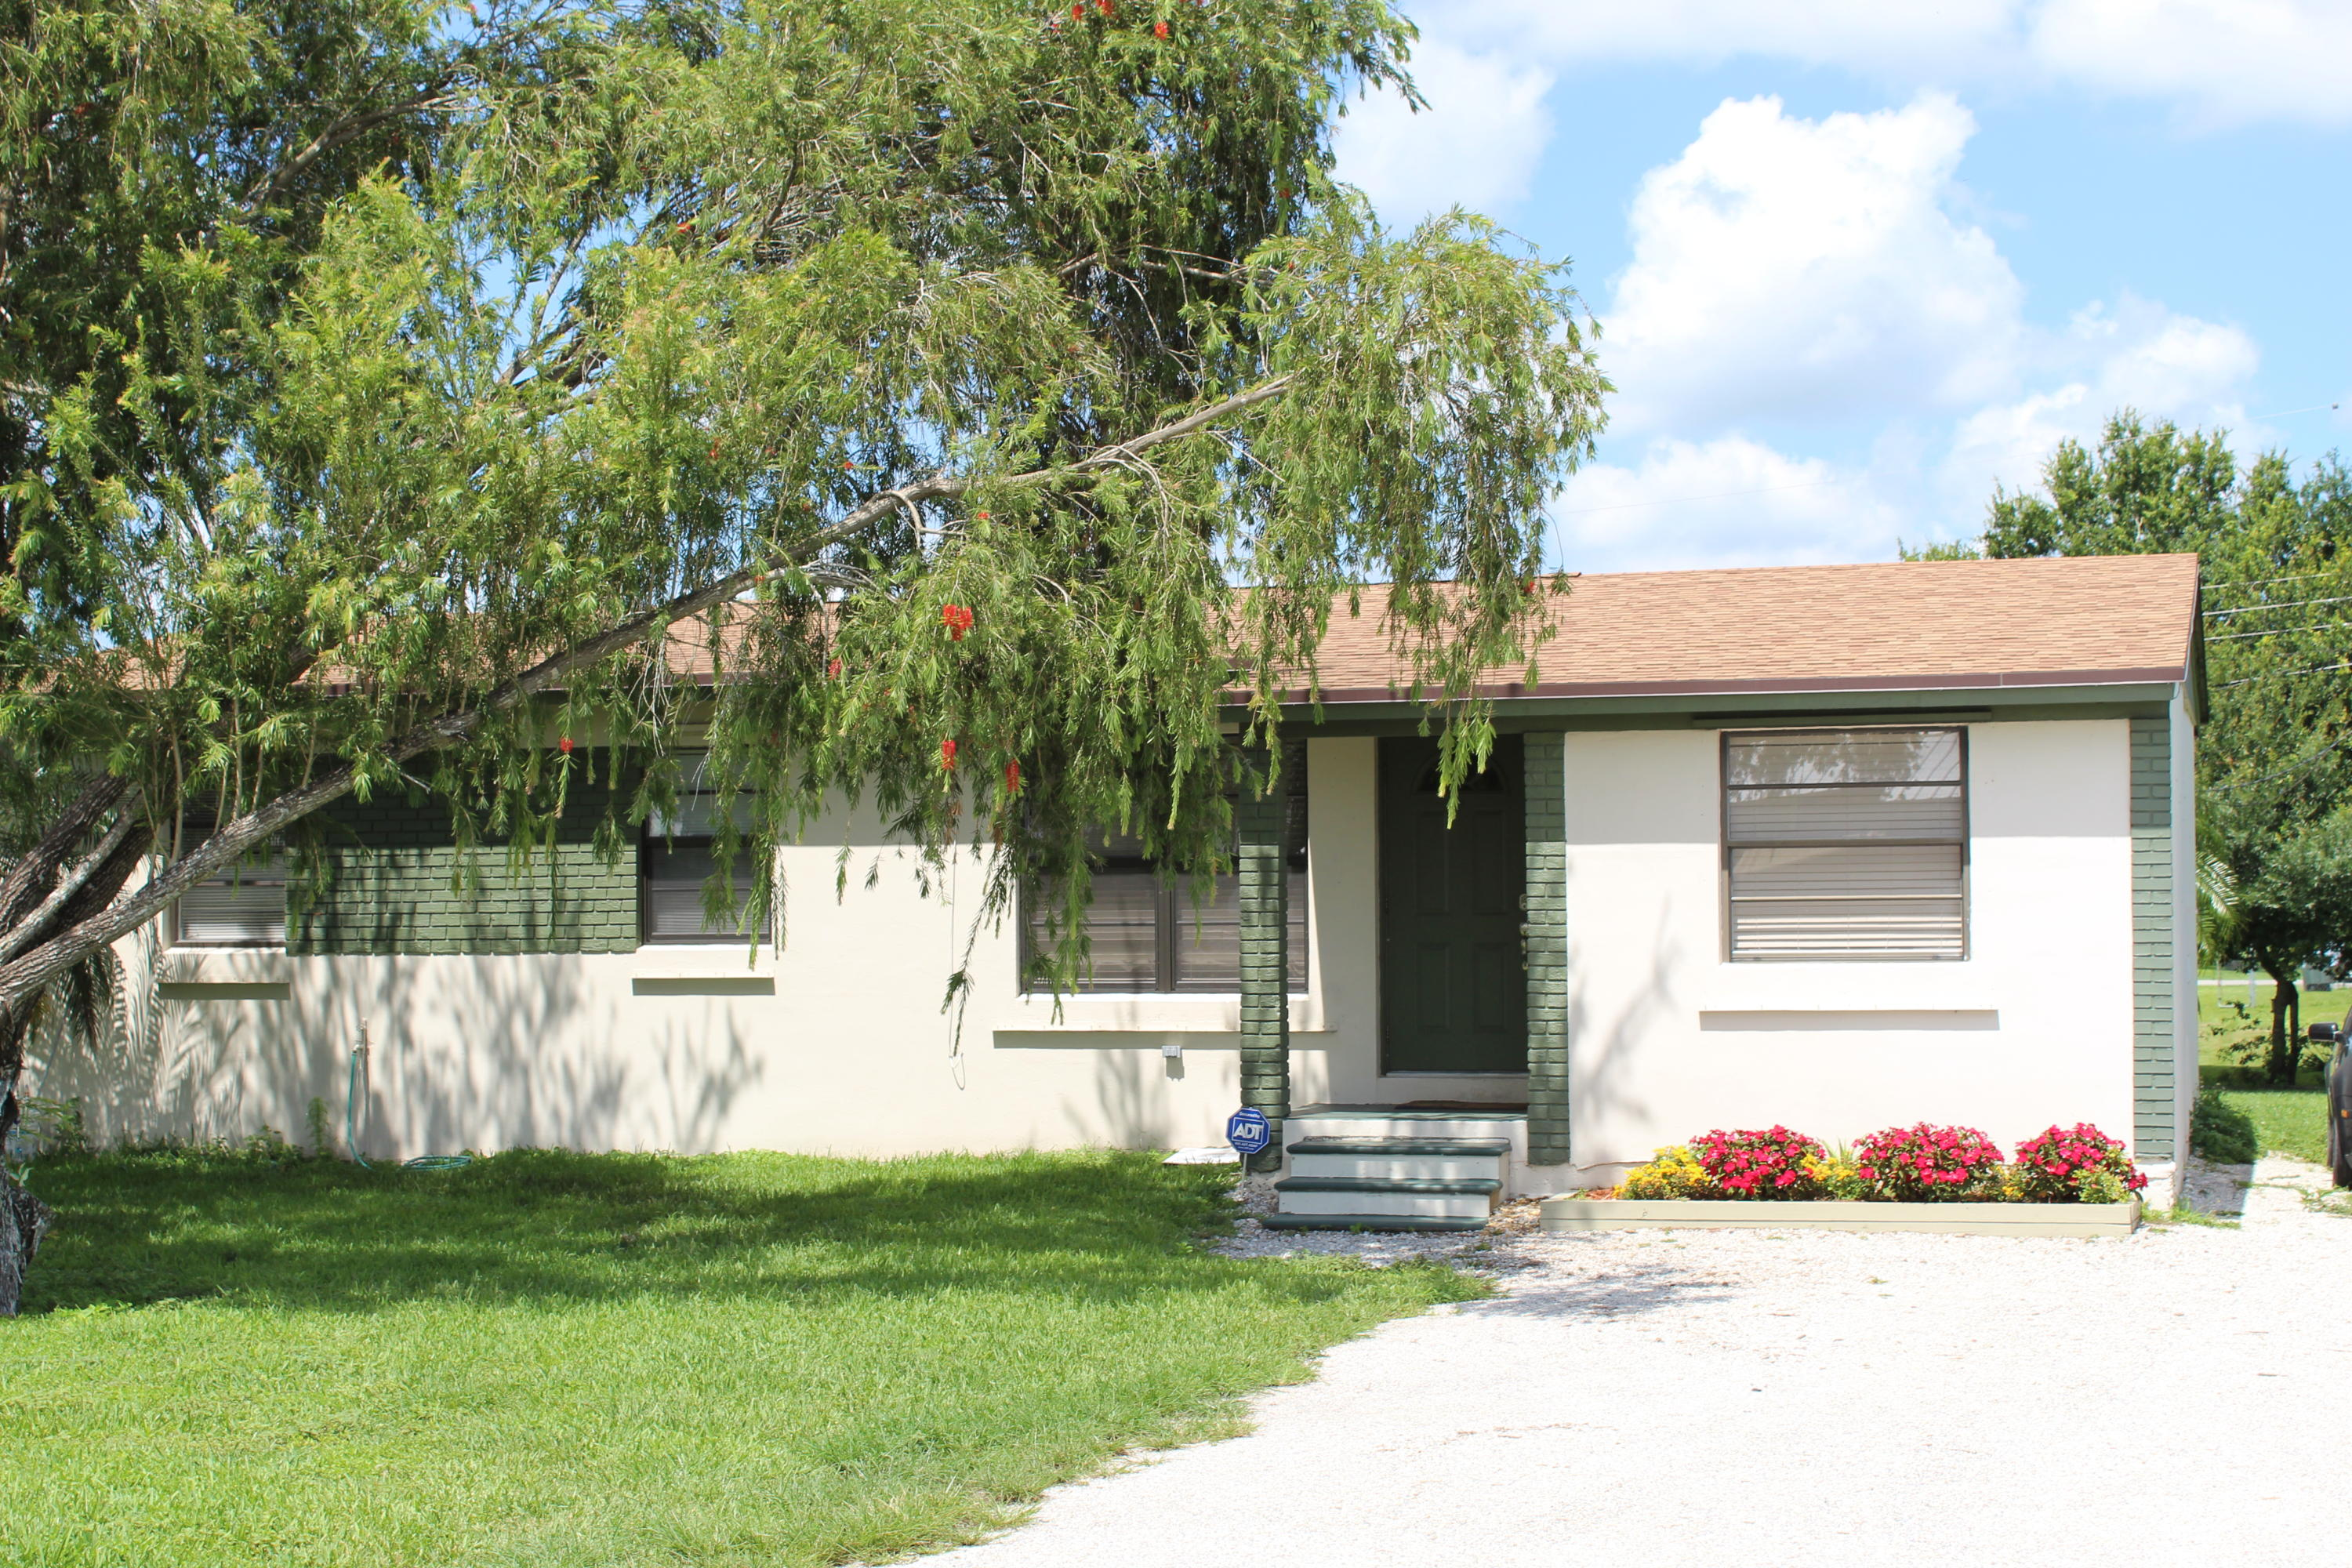 Homes For Sale By Owner >> Belle Glade Florida Homes For Sale By Owner Fsbo Byowner Com